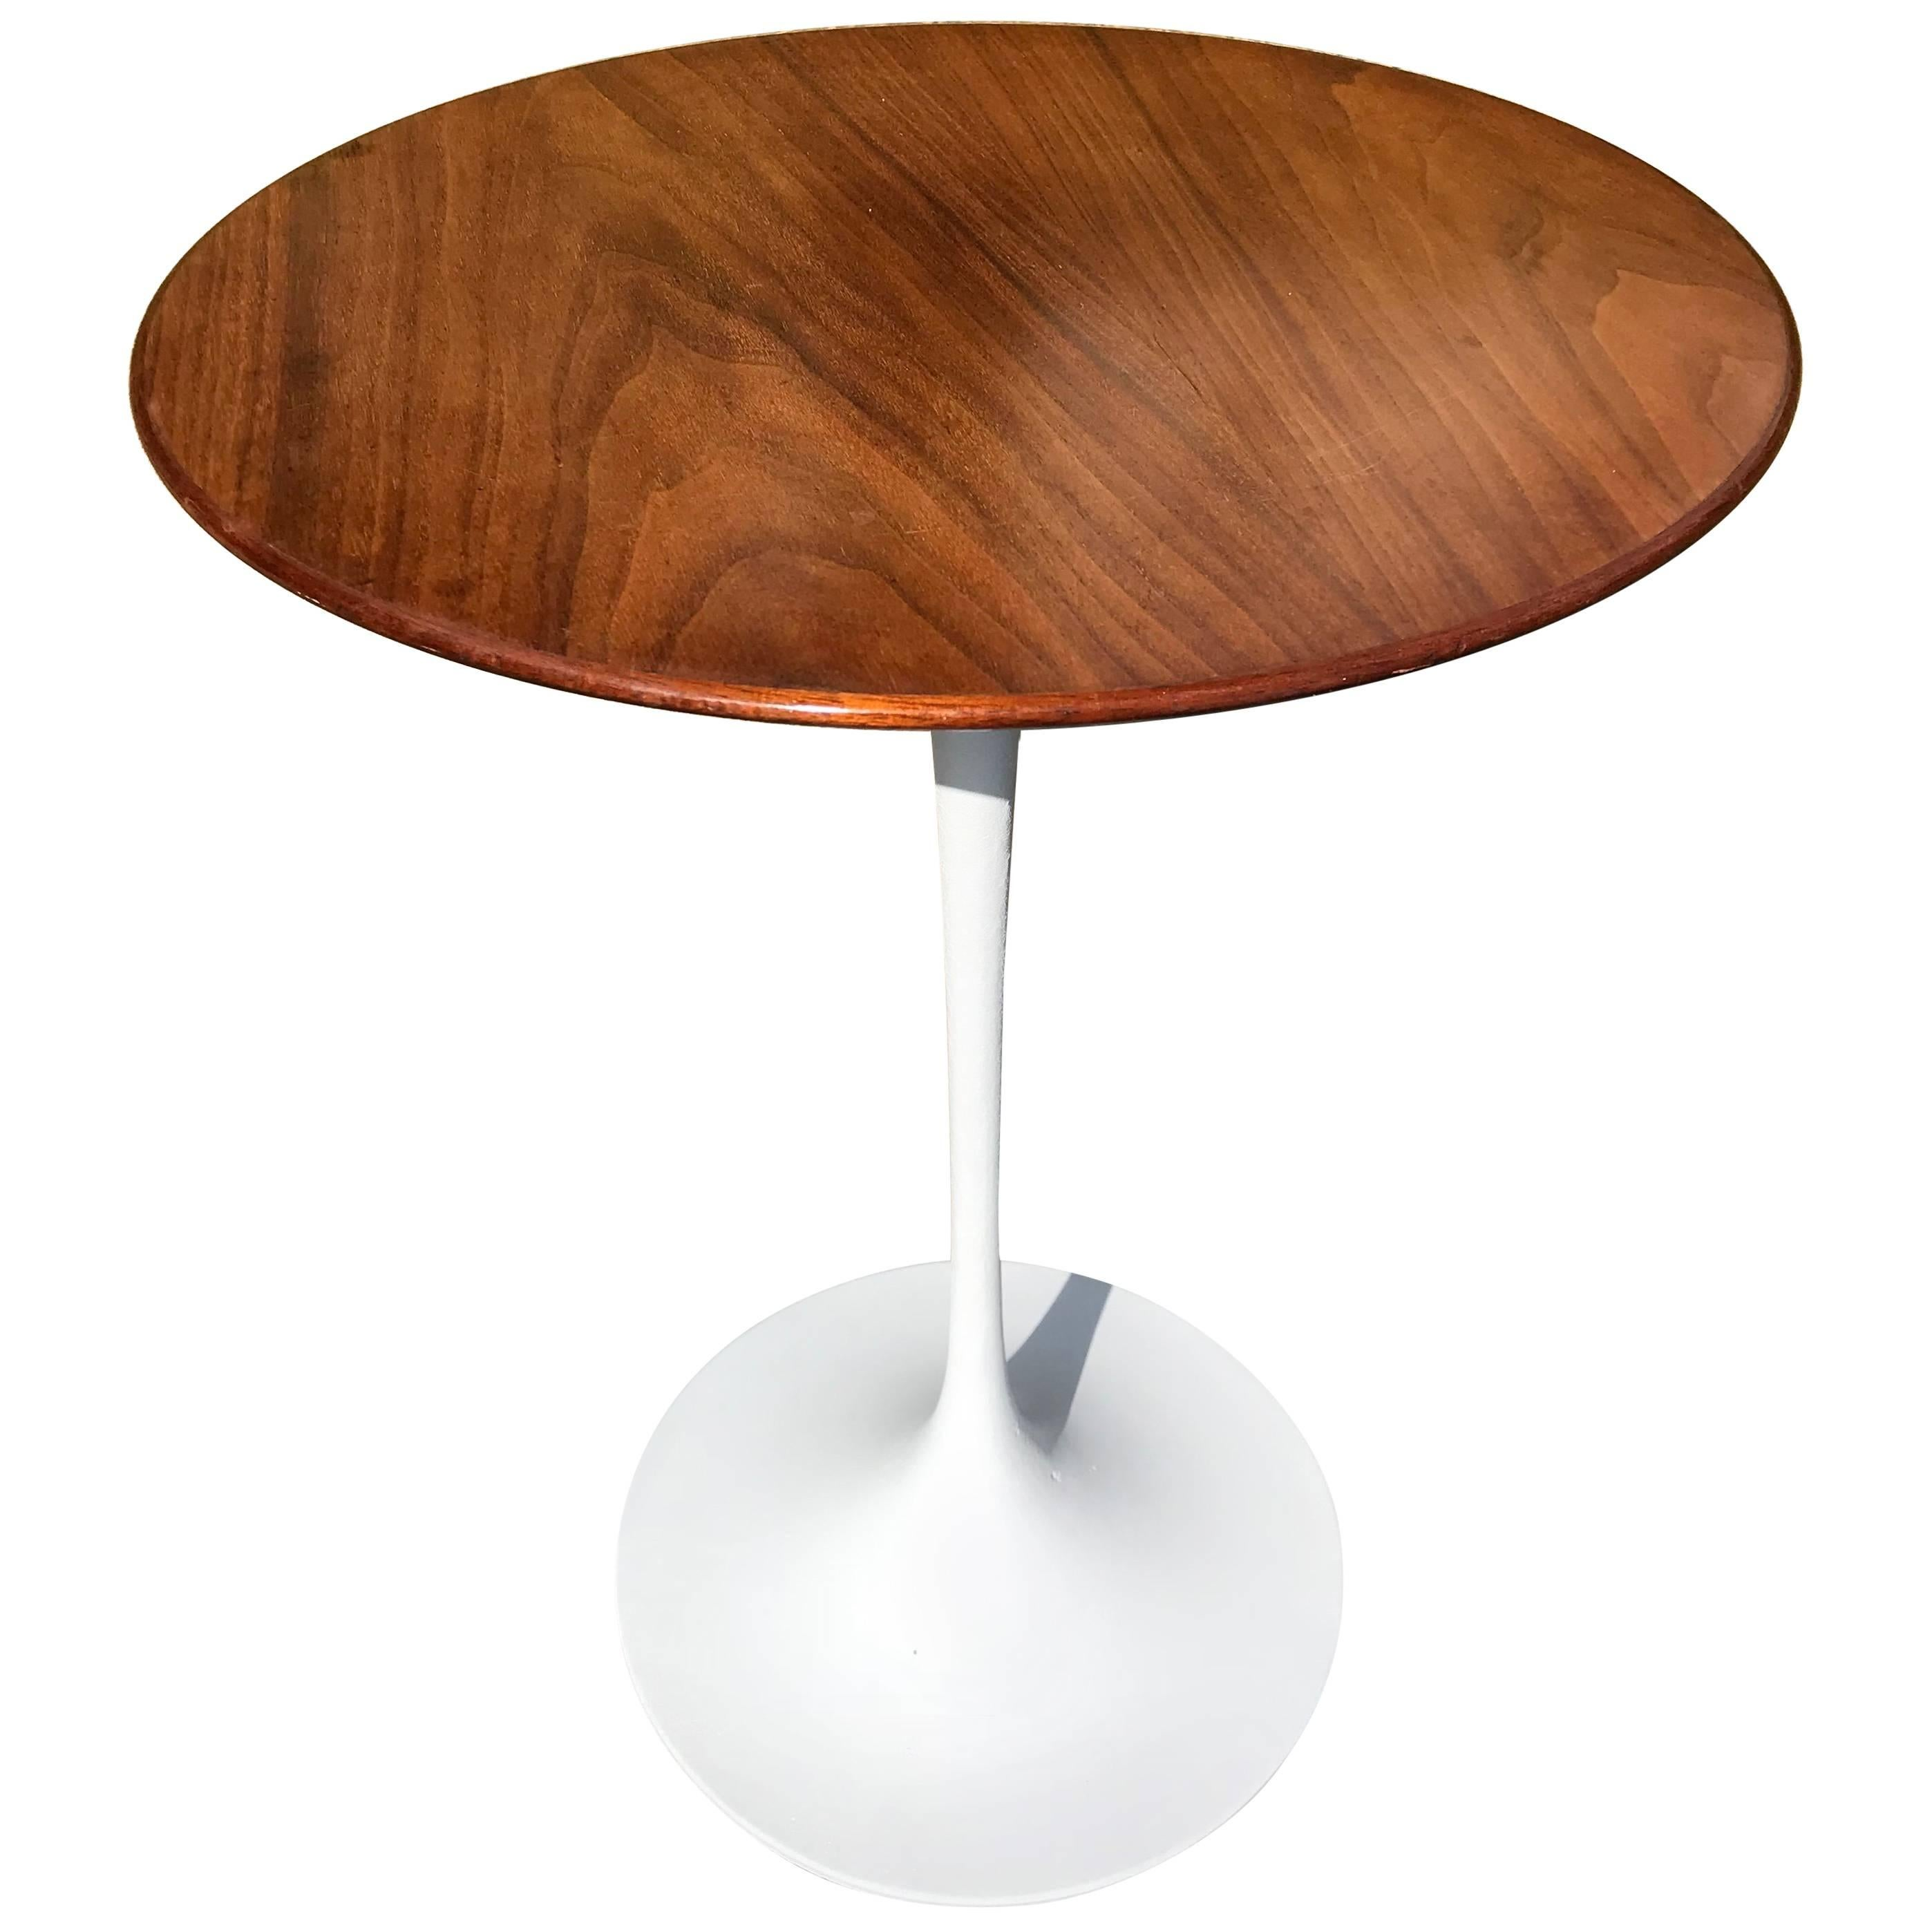 Tulip Table In Small Size By Eero Saarinen